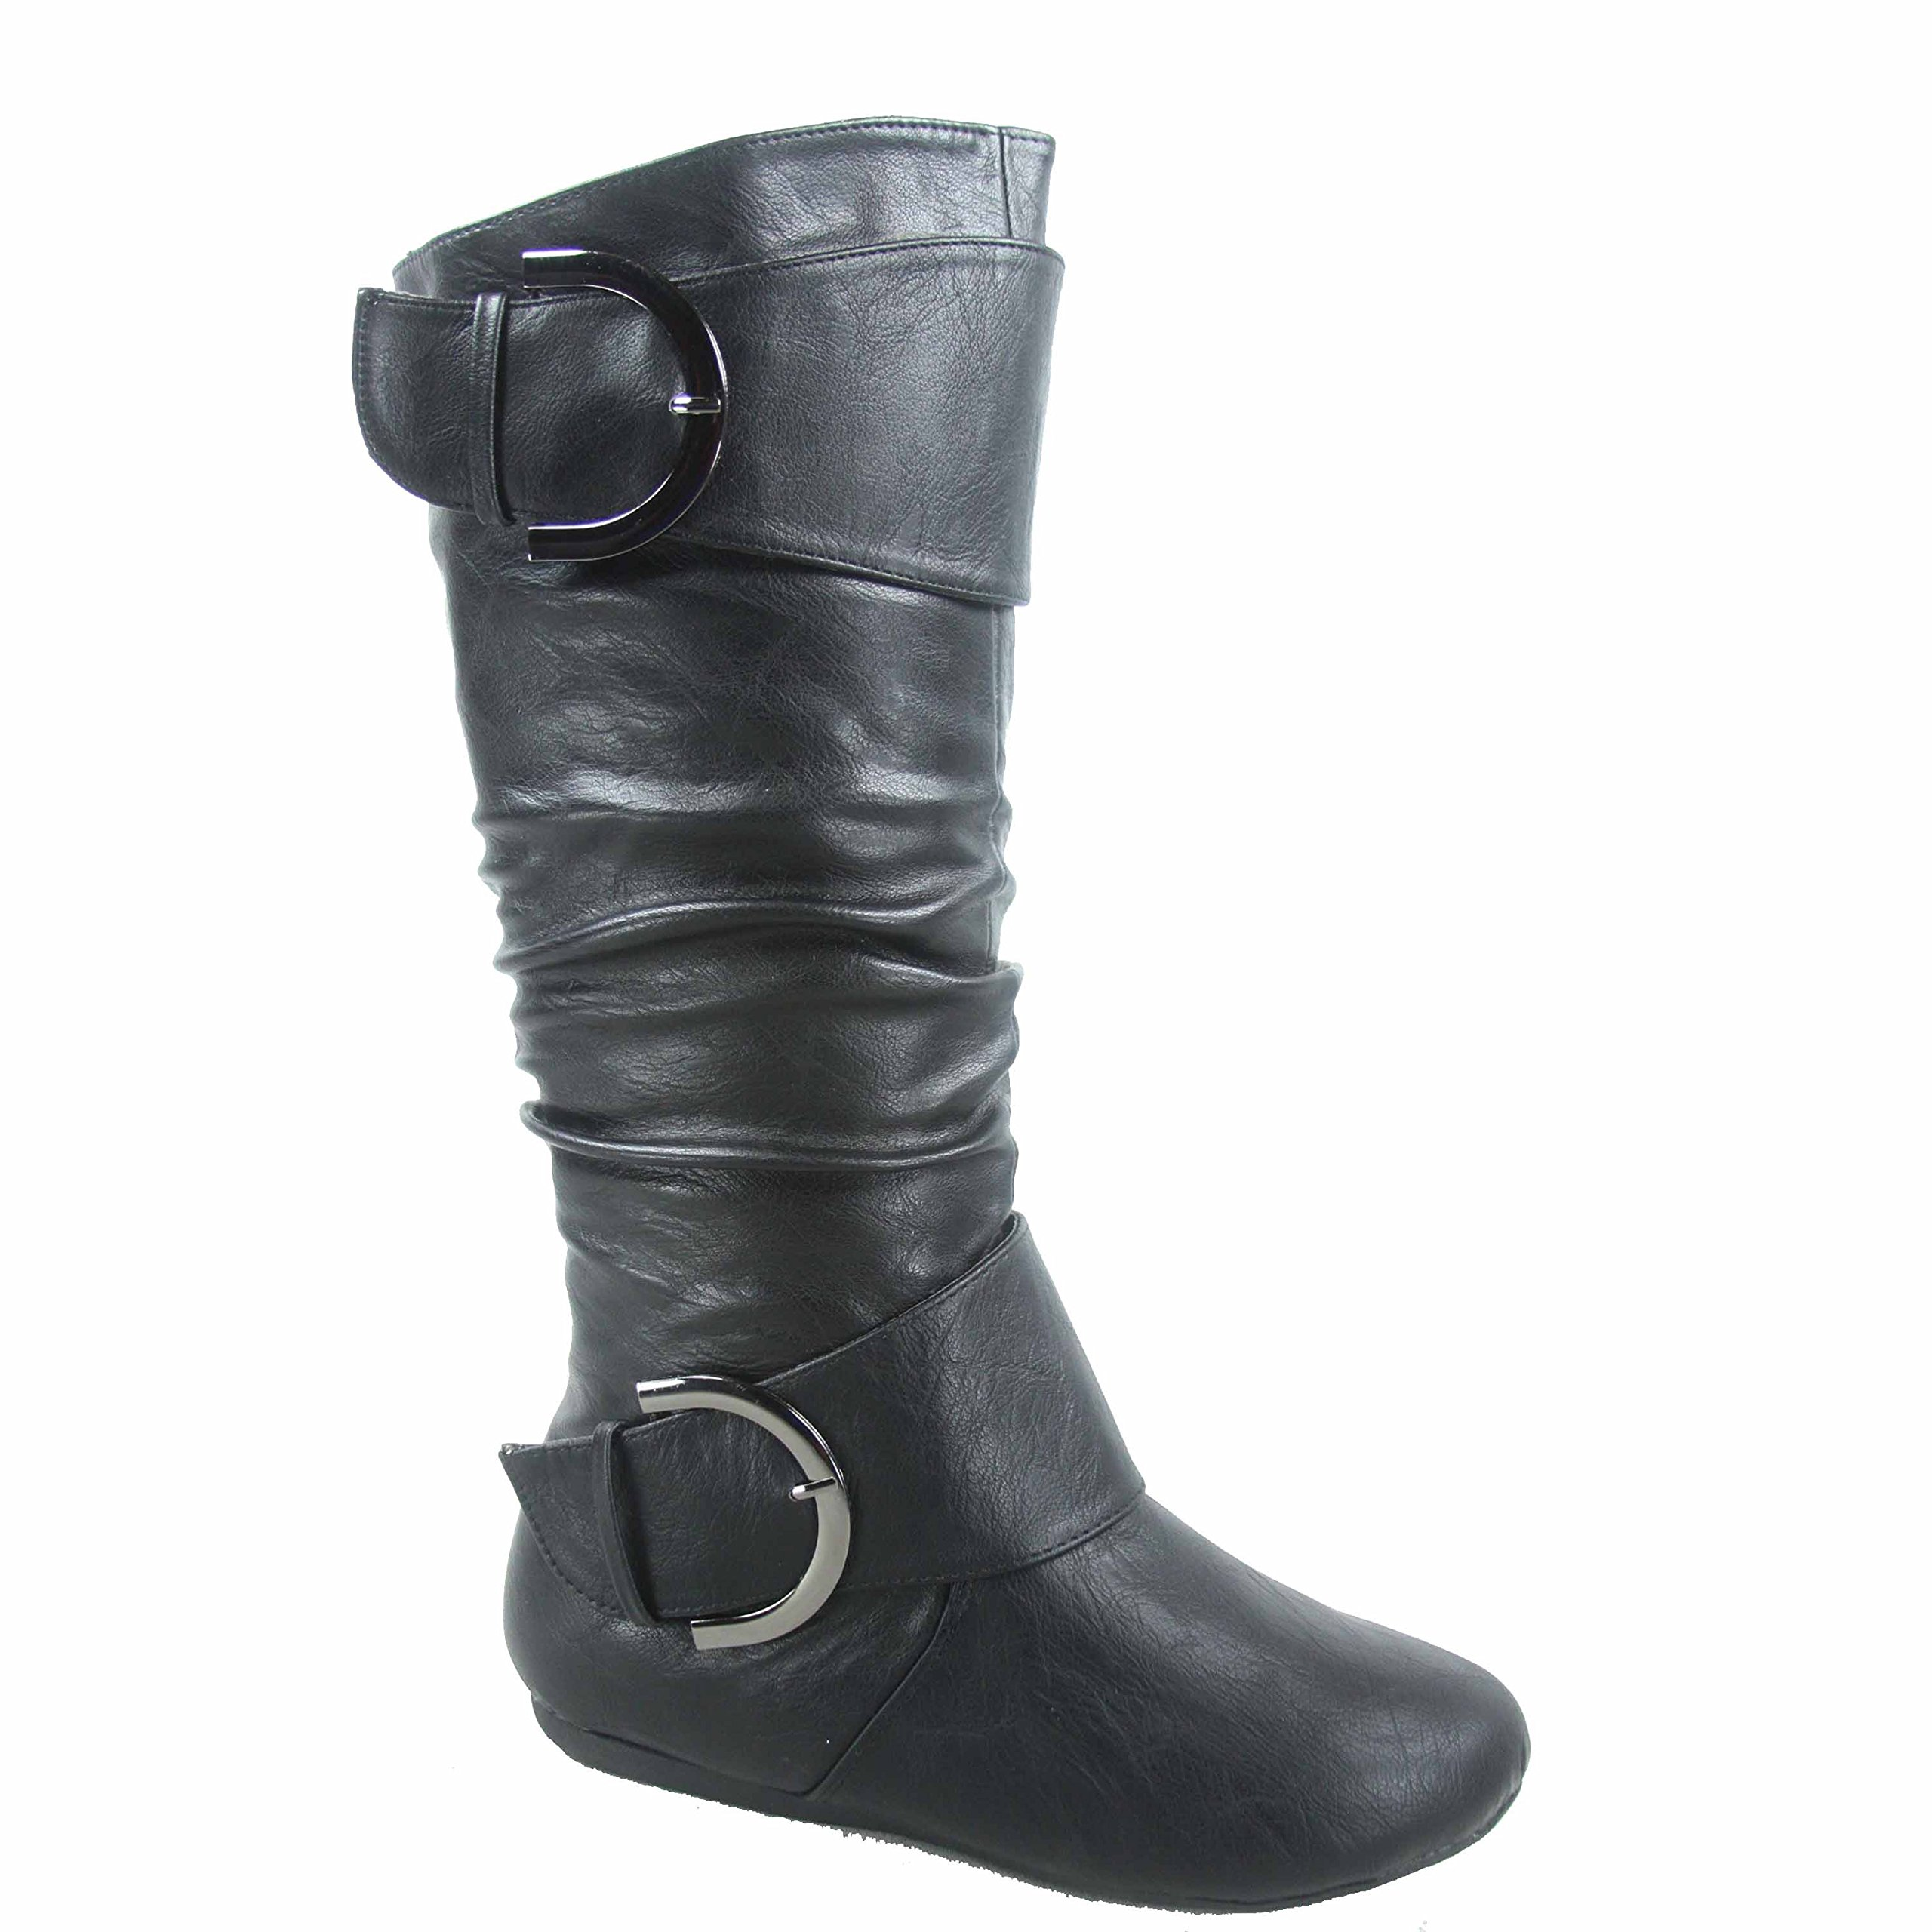 Top Moda Bank-85 Women's Fashion Mid Calf Round Toe Slouch Comfort Casual Flat Boot (10, Black)